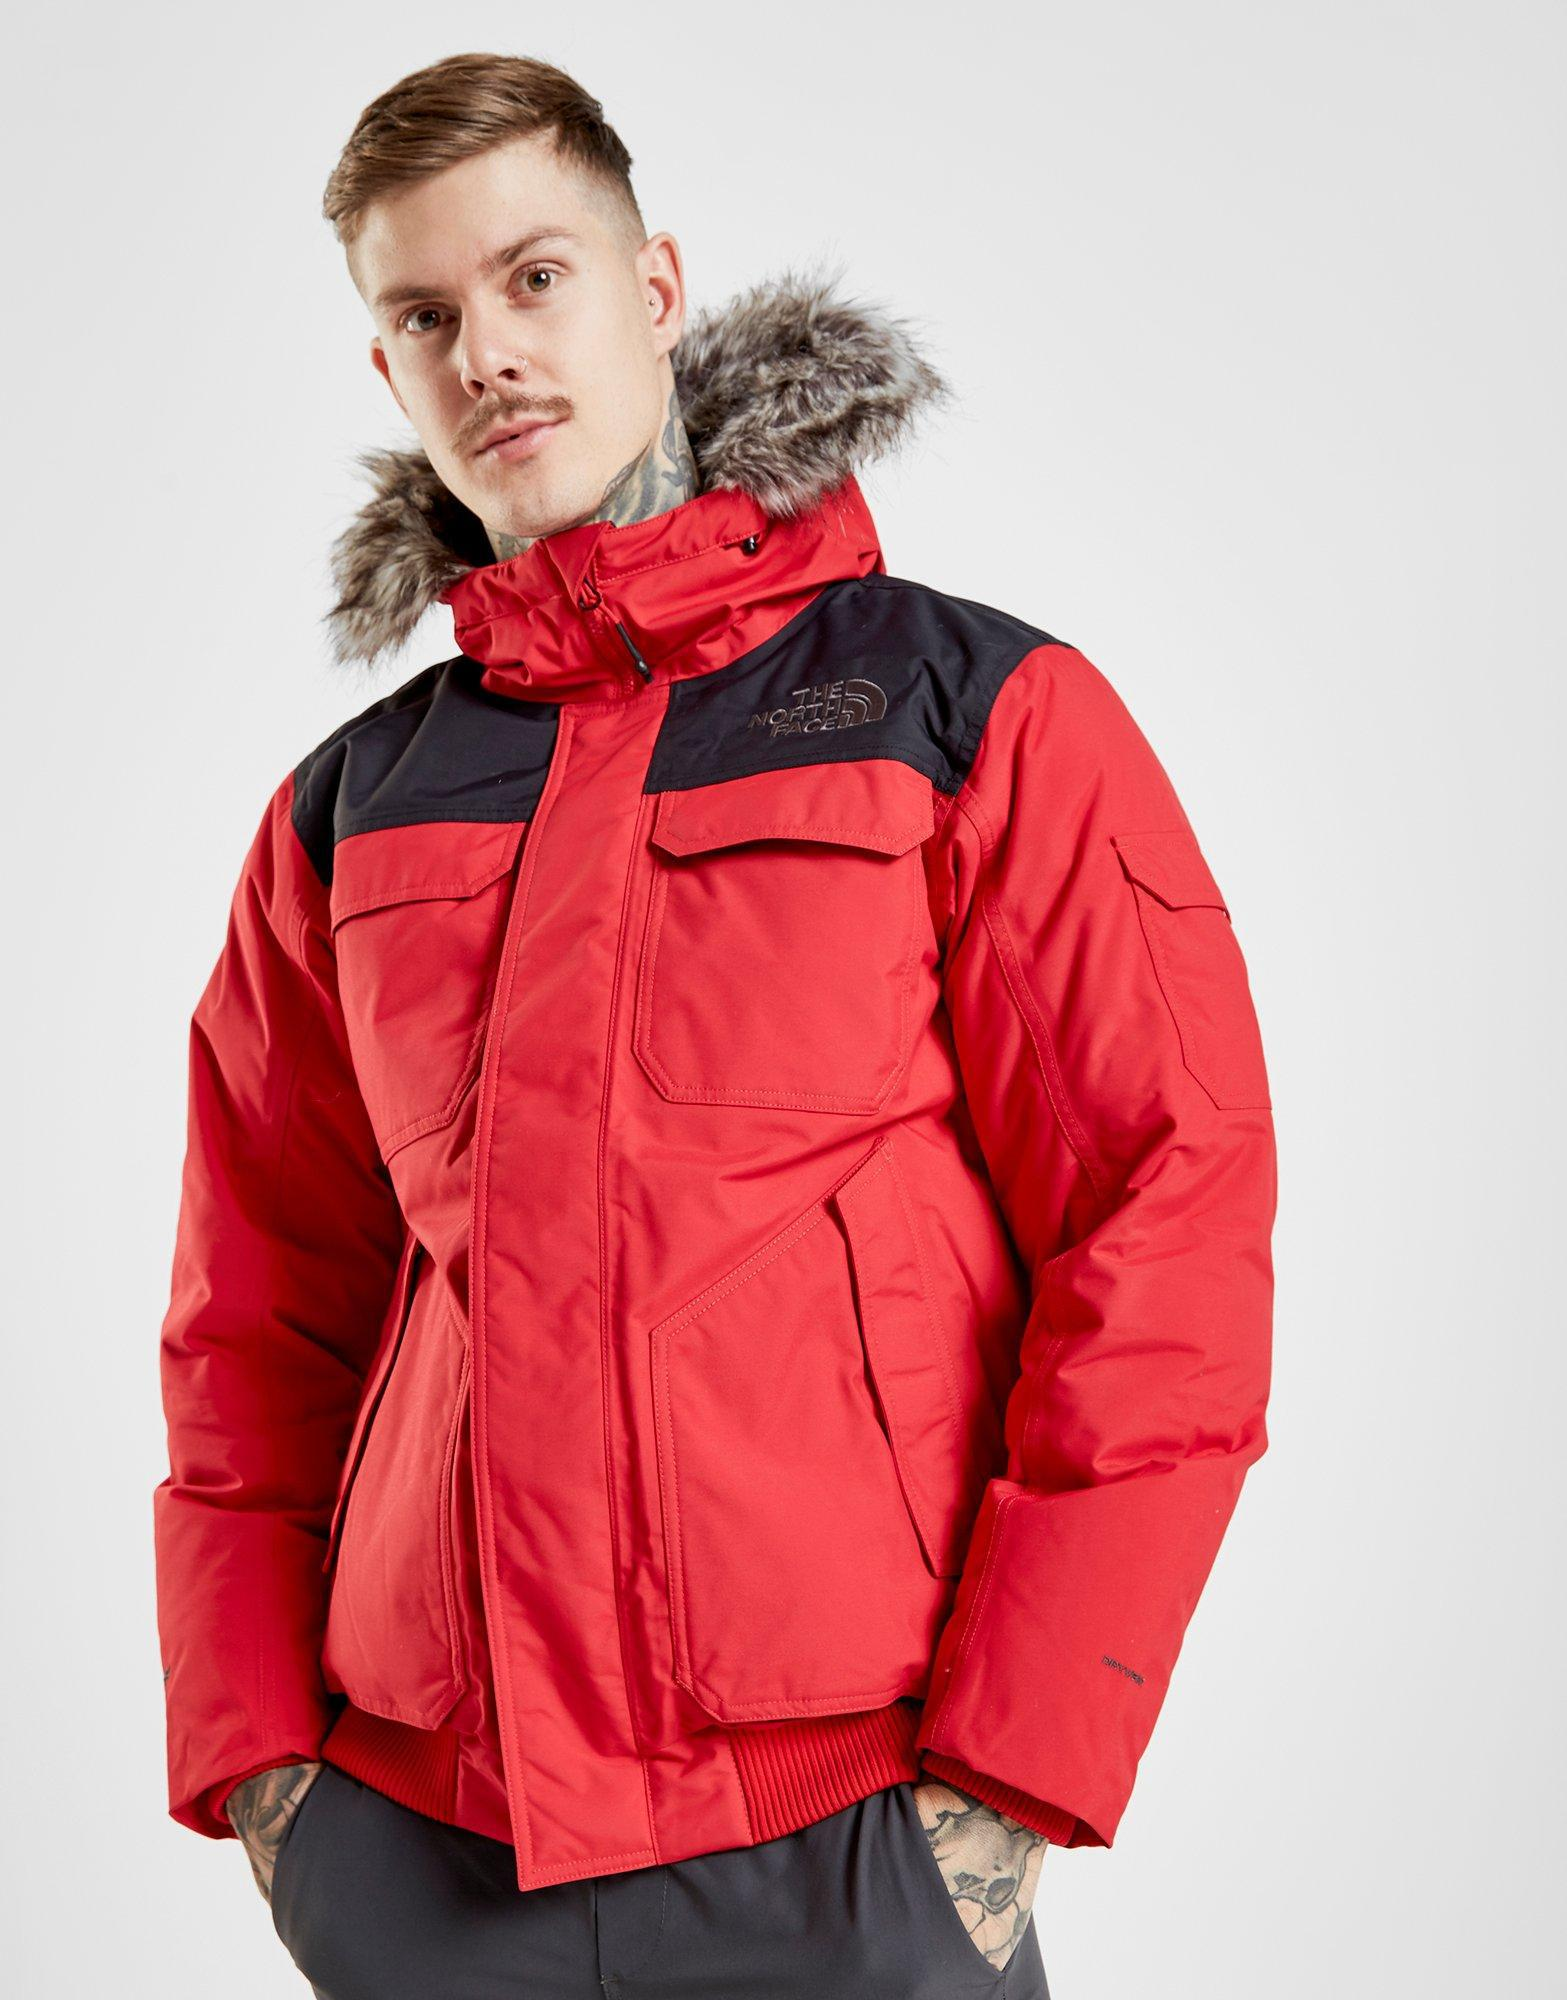 9a3ef9629 The North Face Red Gotham Iii Jacket for men